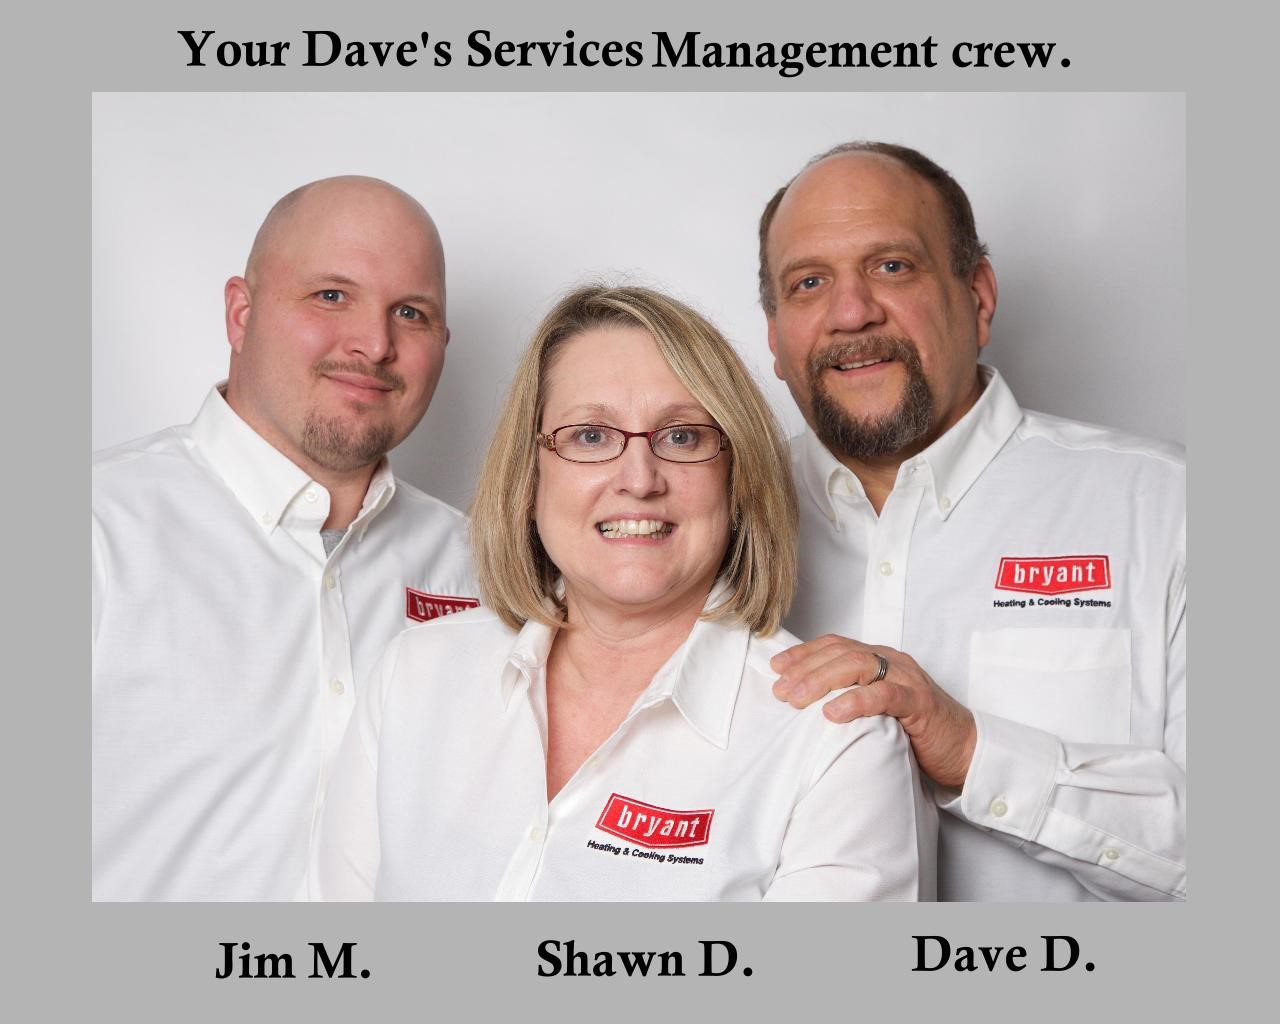 Dave's Services Management Crew